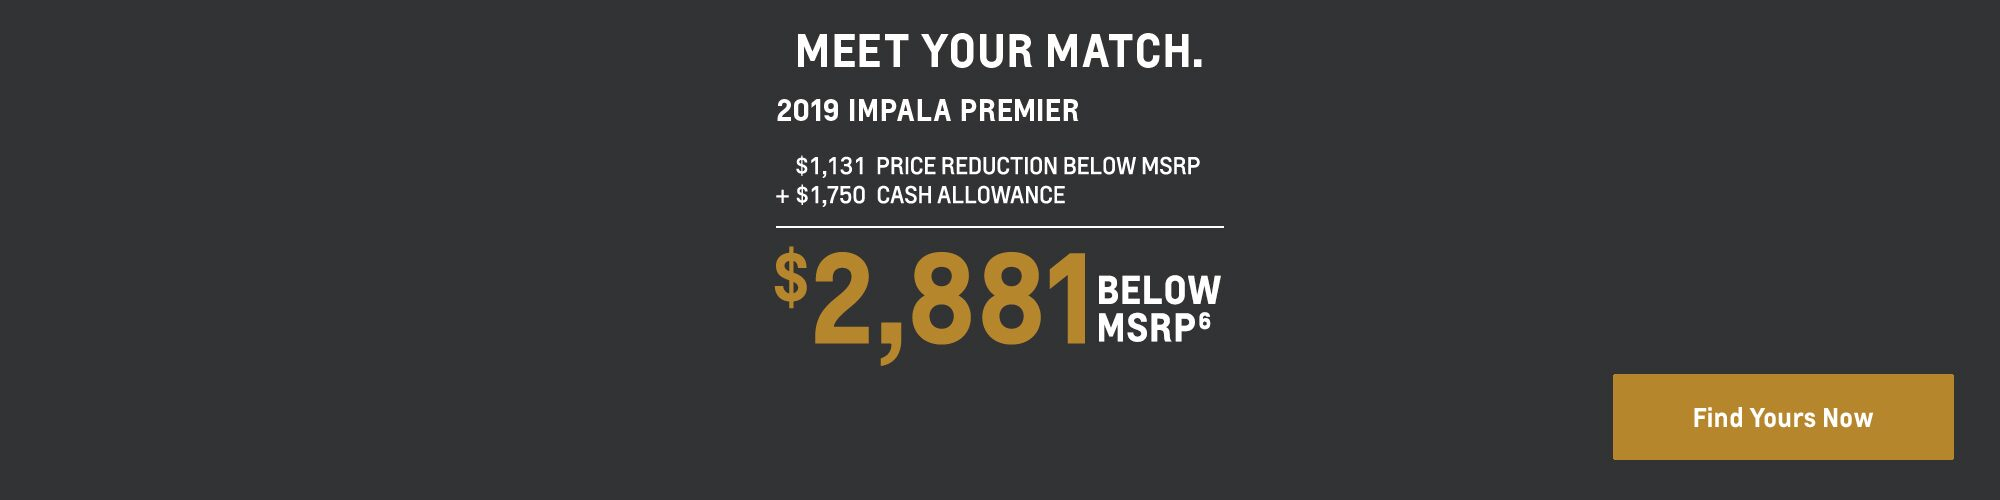 2019 Impala: $2,881 Below MSRP